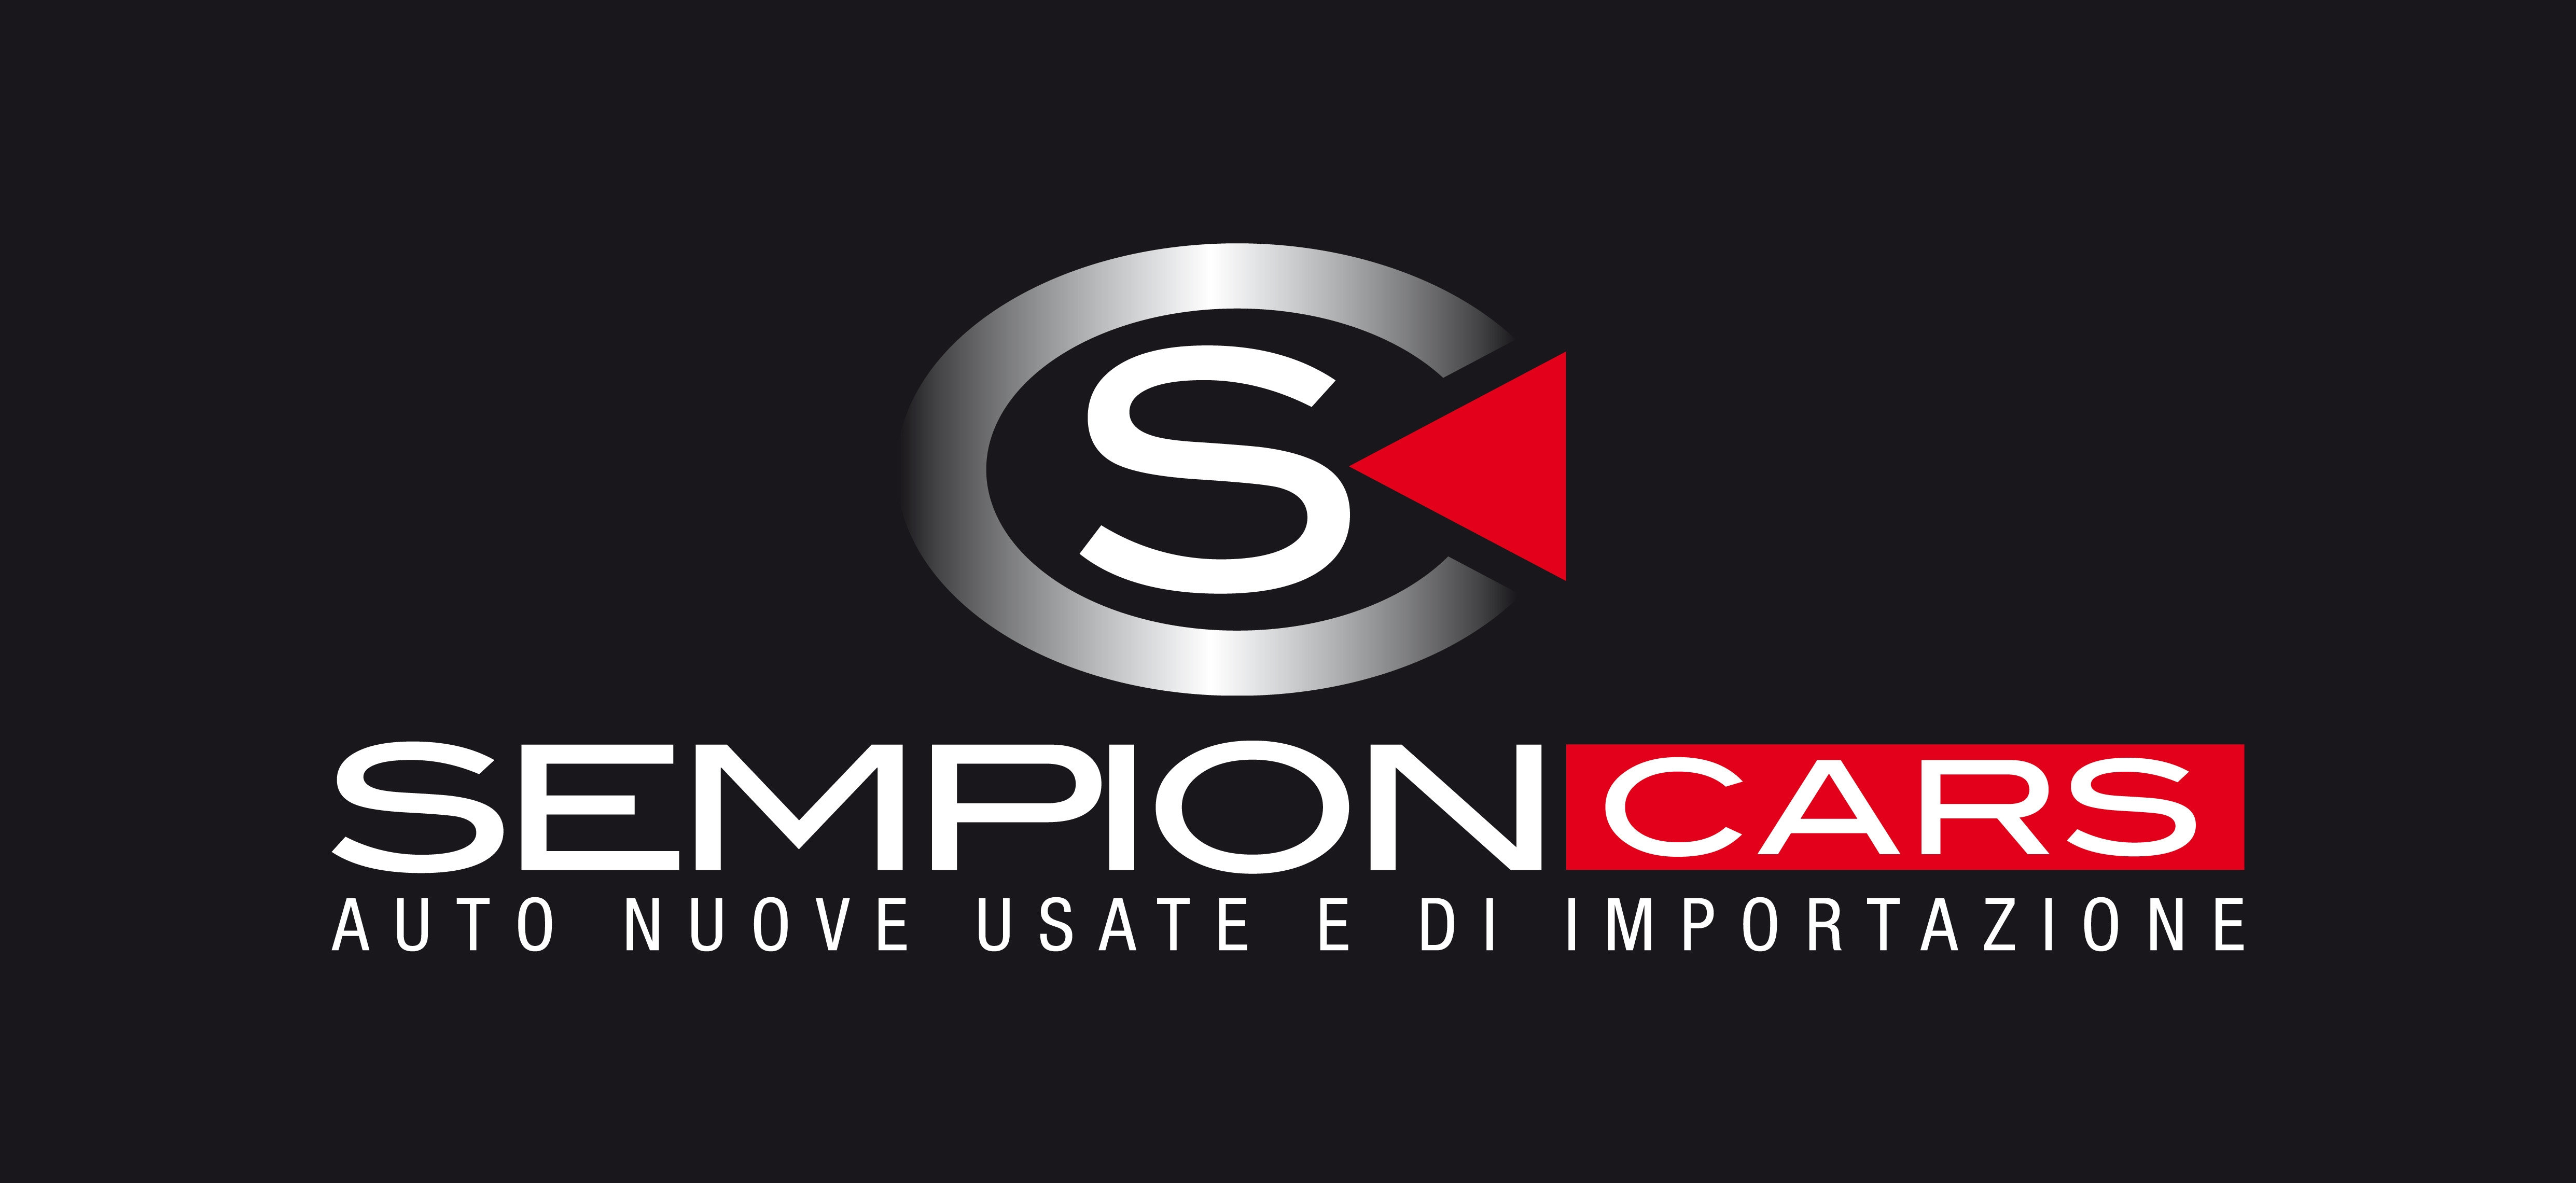 Sempion Cars Srl